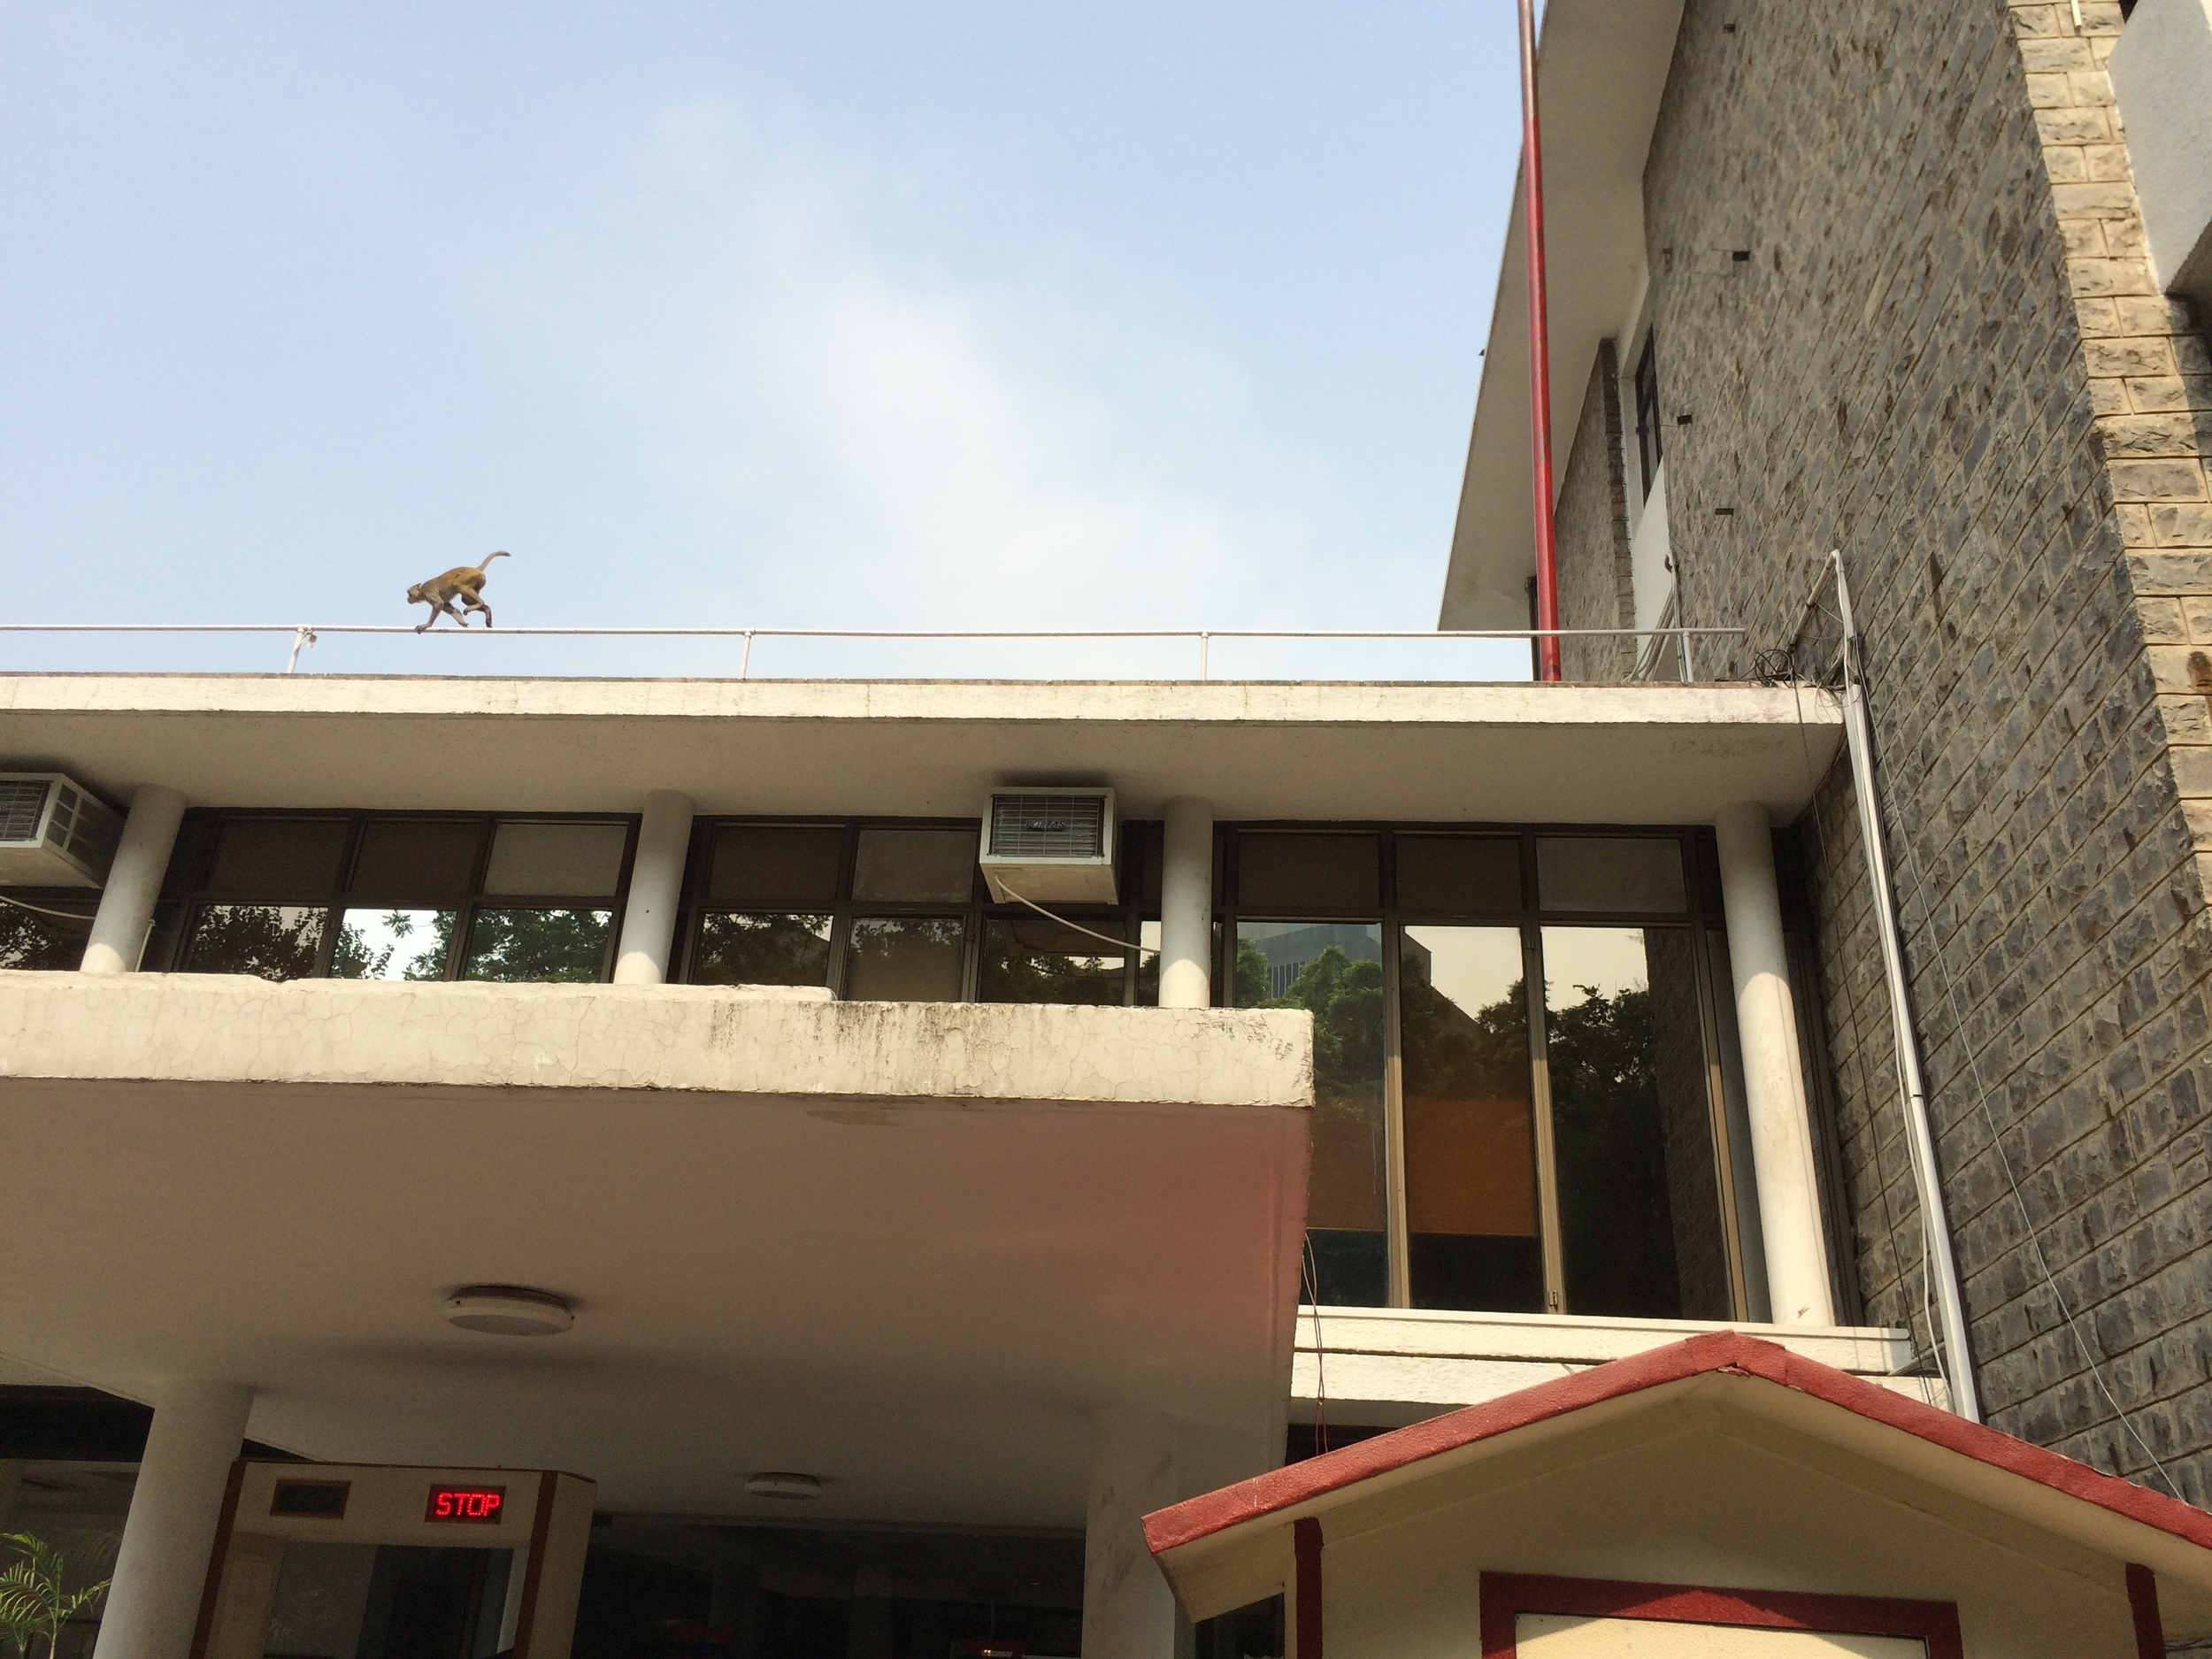 A monkey scampers across the roof of our hotel in New Delhi.